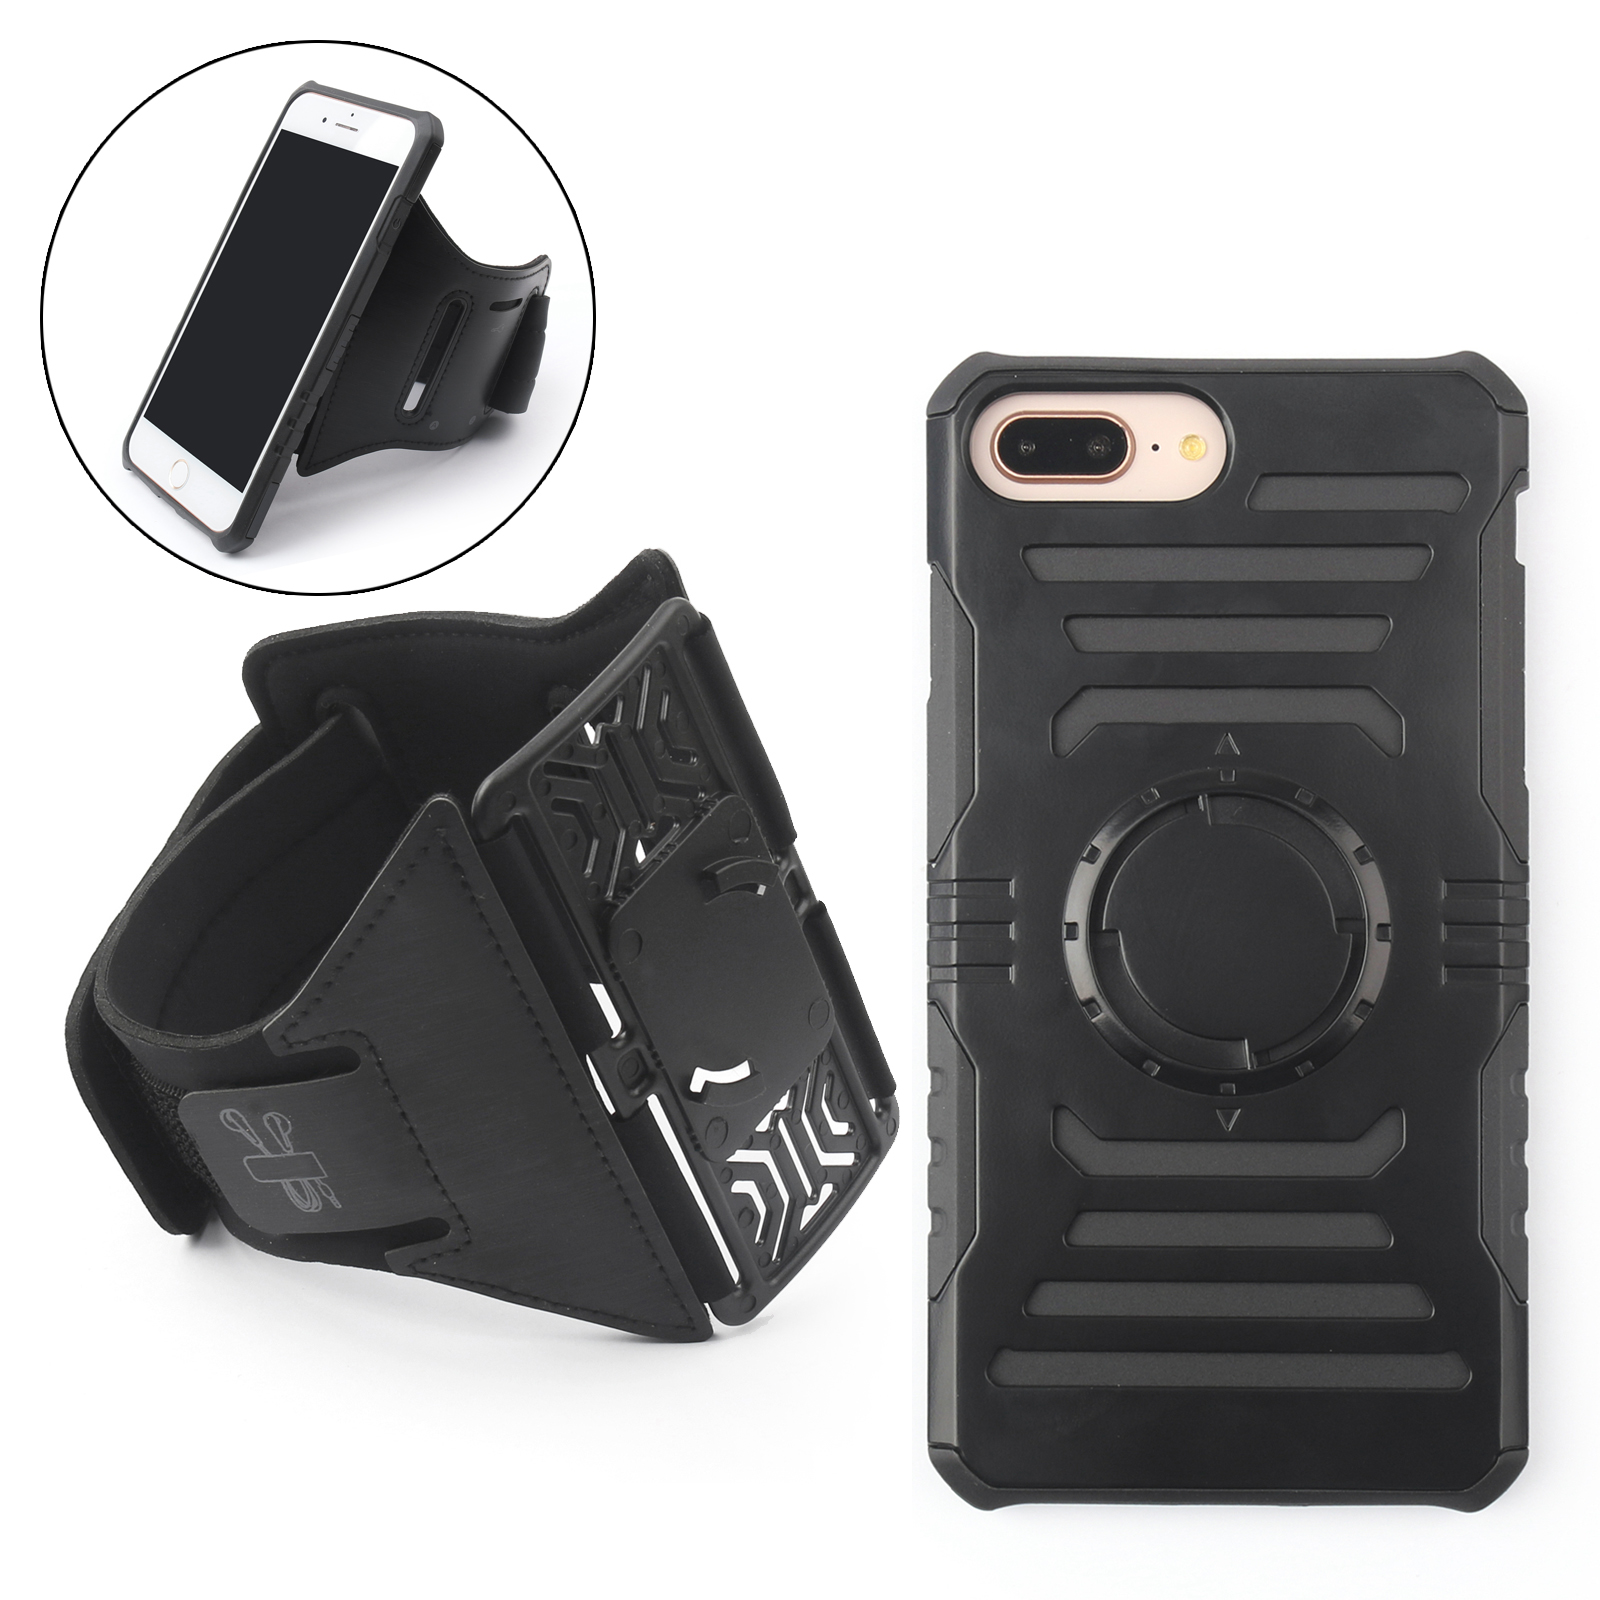 Areyourshop Armband Arm Band Sports Shockproof Magnetic Case For Iphone 6 6S 7 8 Plus Black